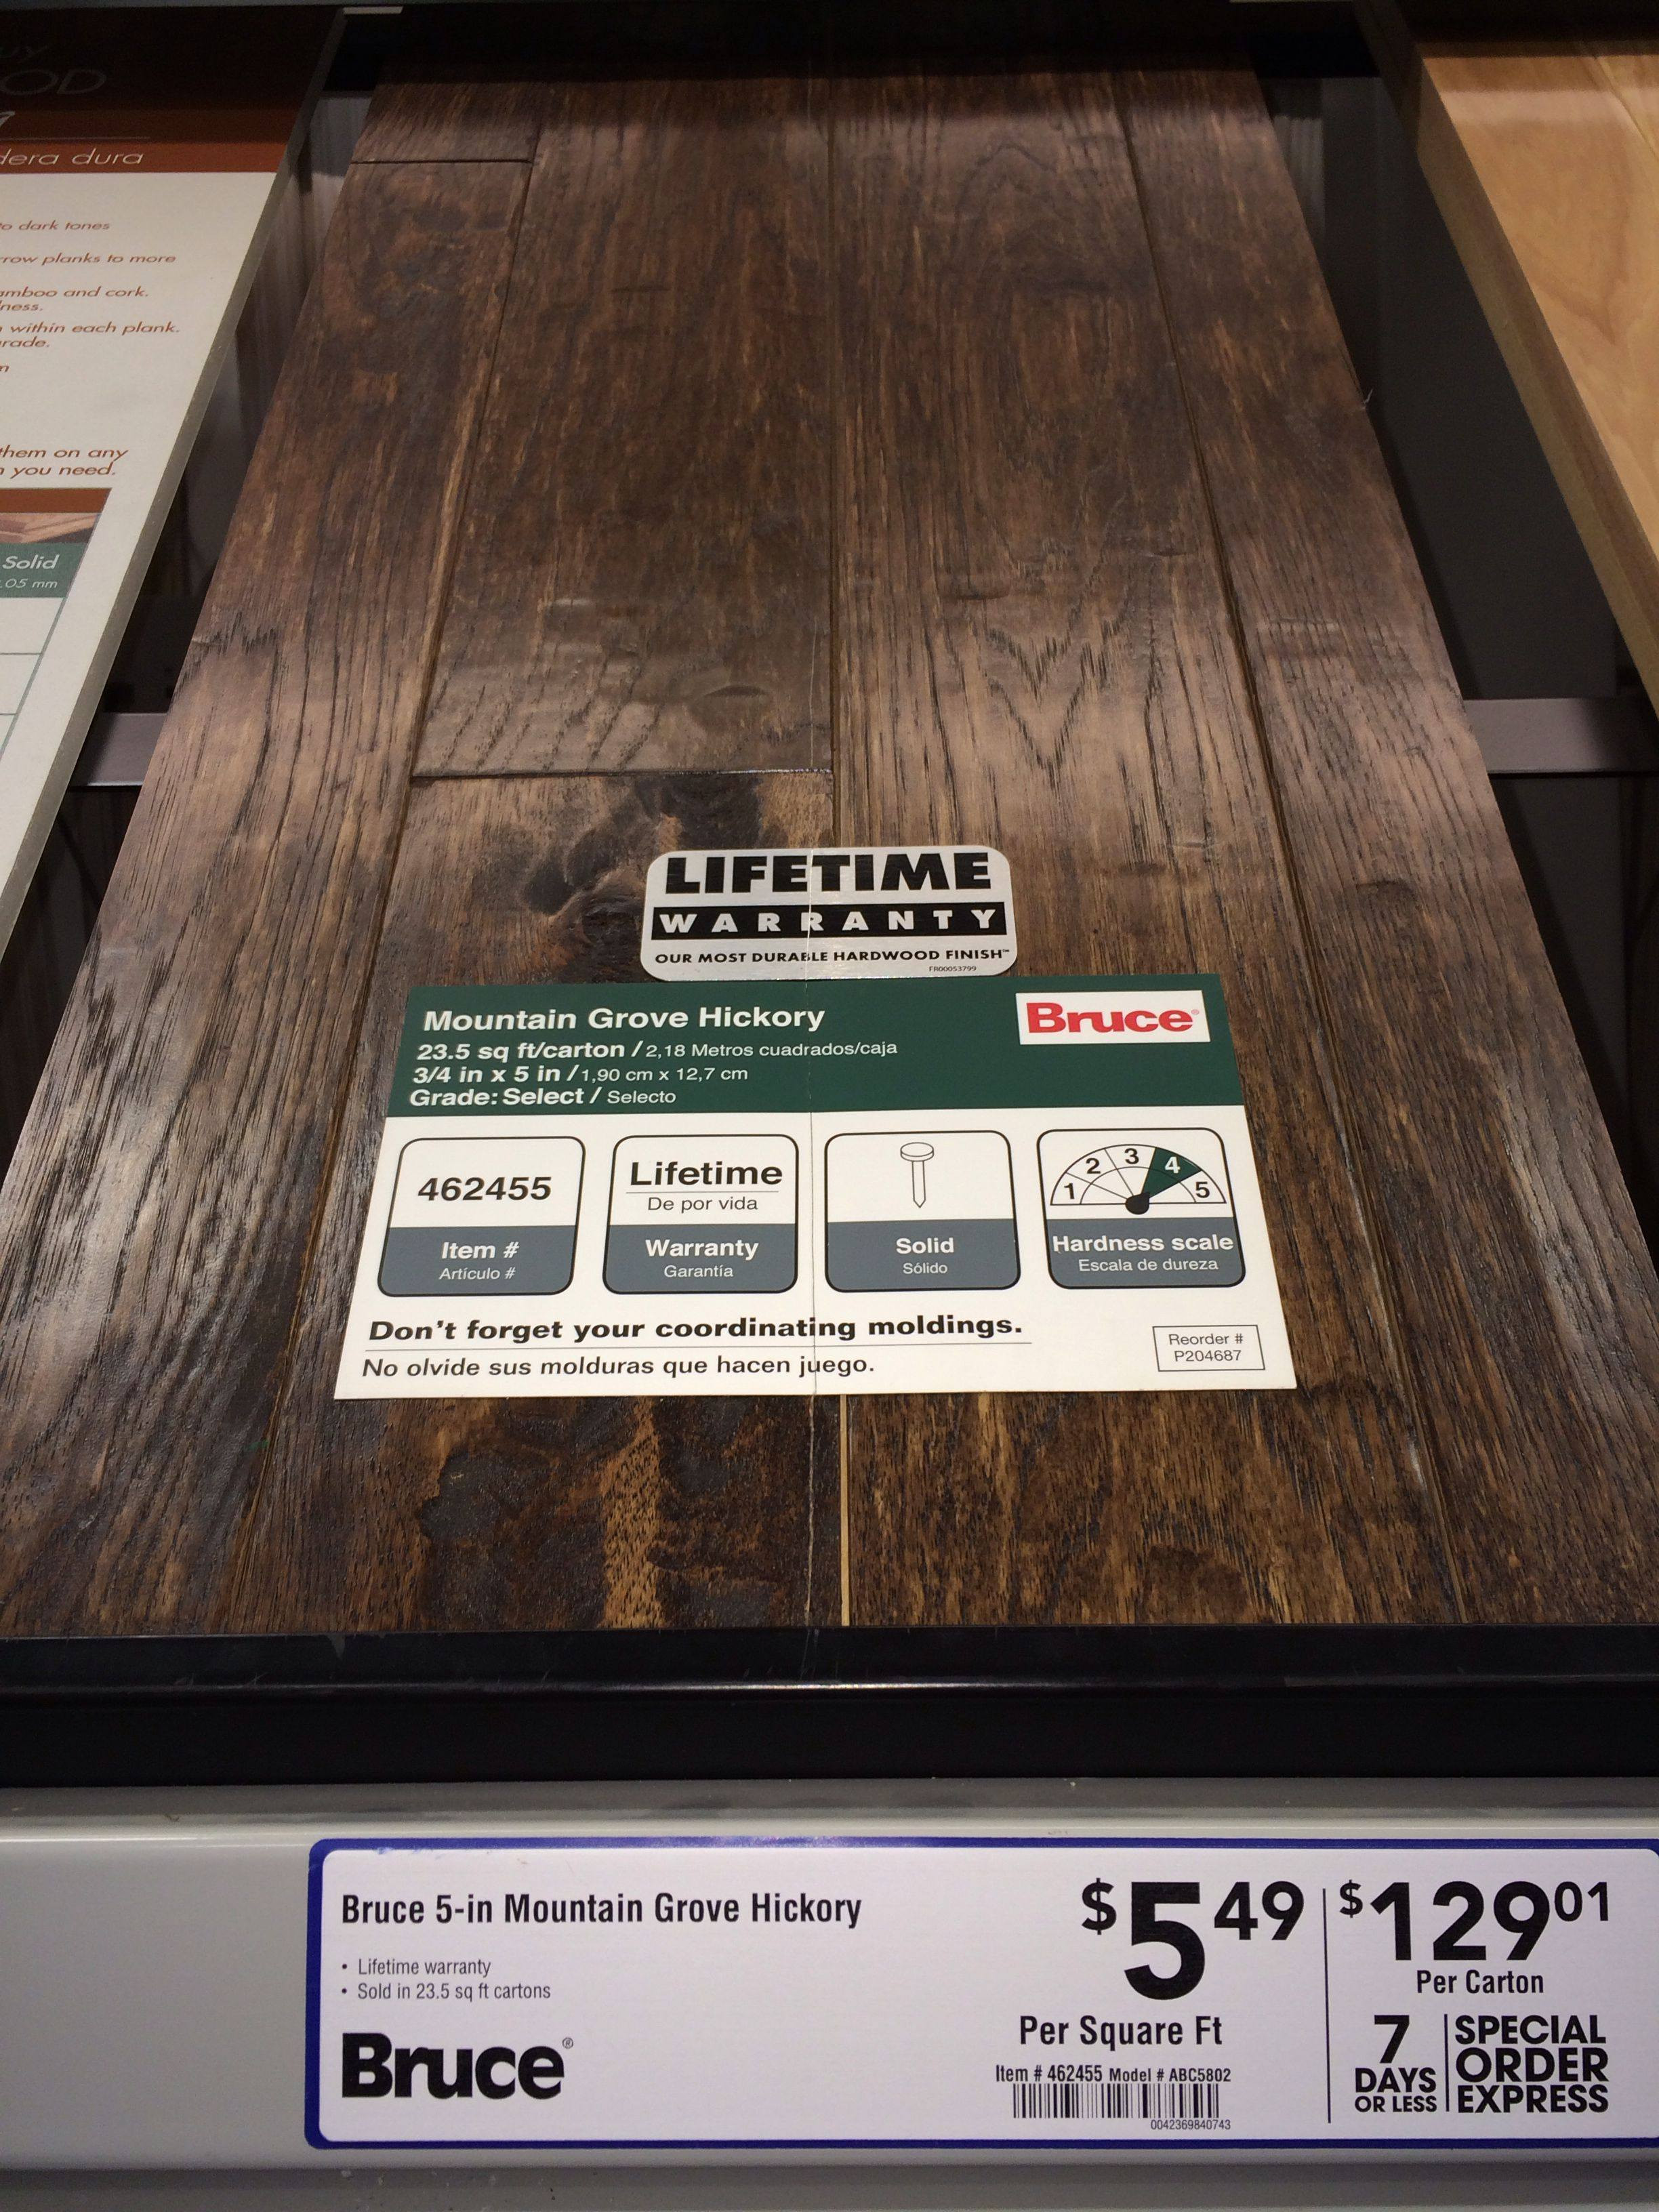 Bruce Wide Plank Hardwood Flooring Of Find the Best Bruce Hardwood Flooring Installation Instructions Throughout Red Oak Natural 3 4 In Thick X 5 In Wide X Random